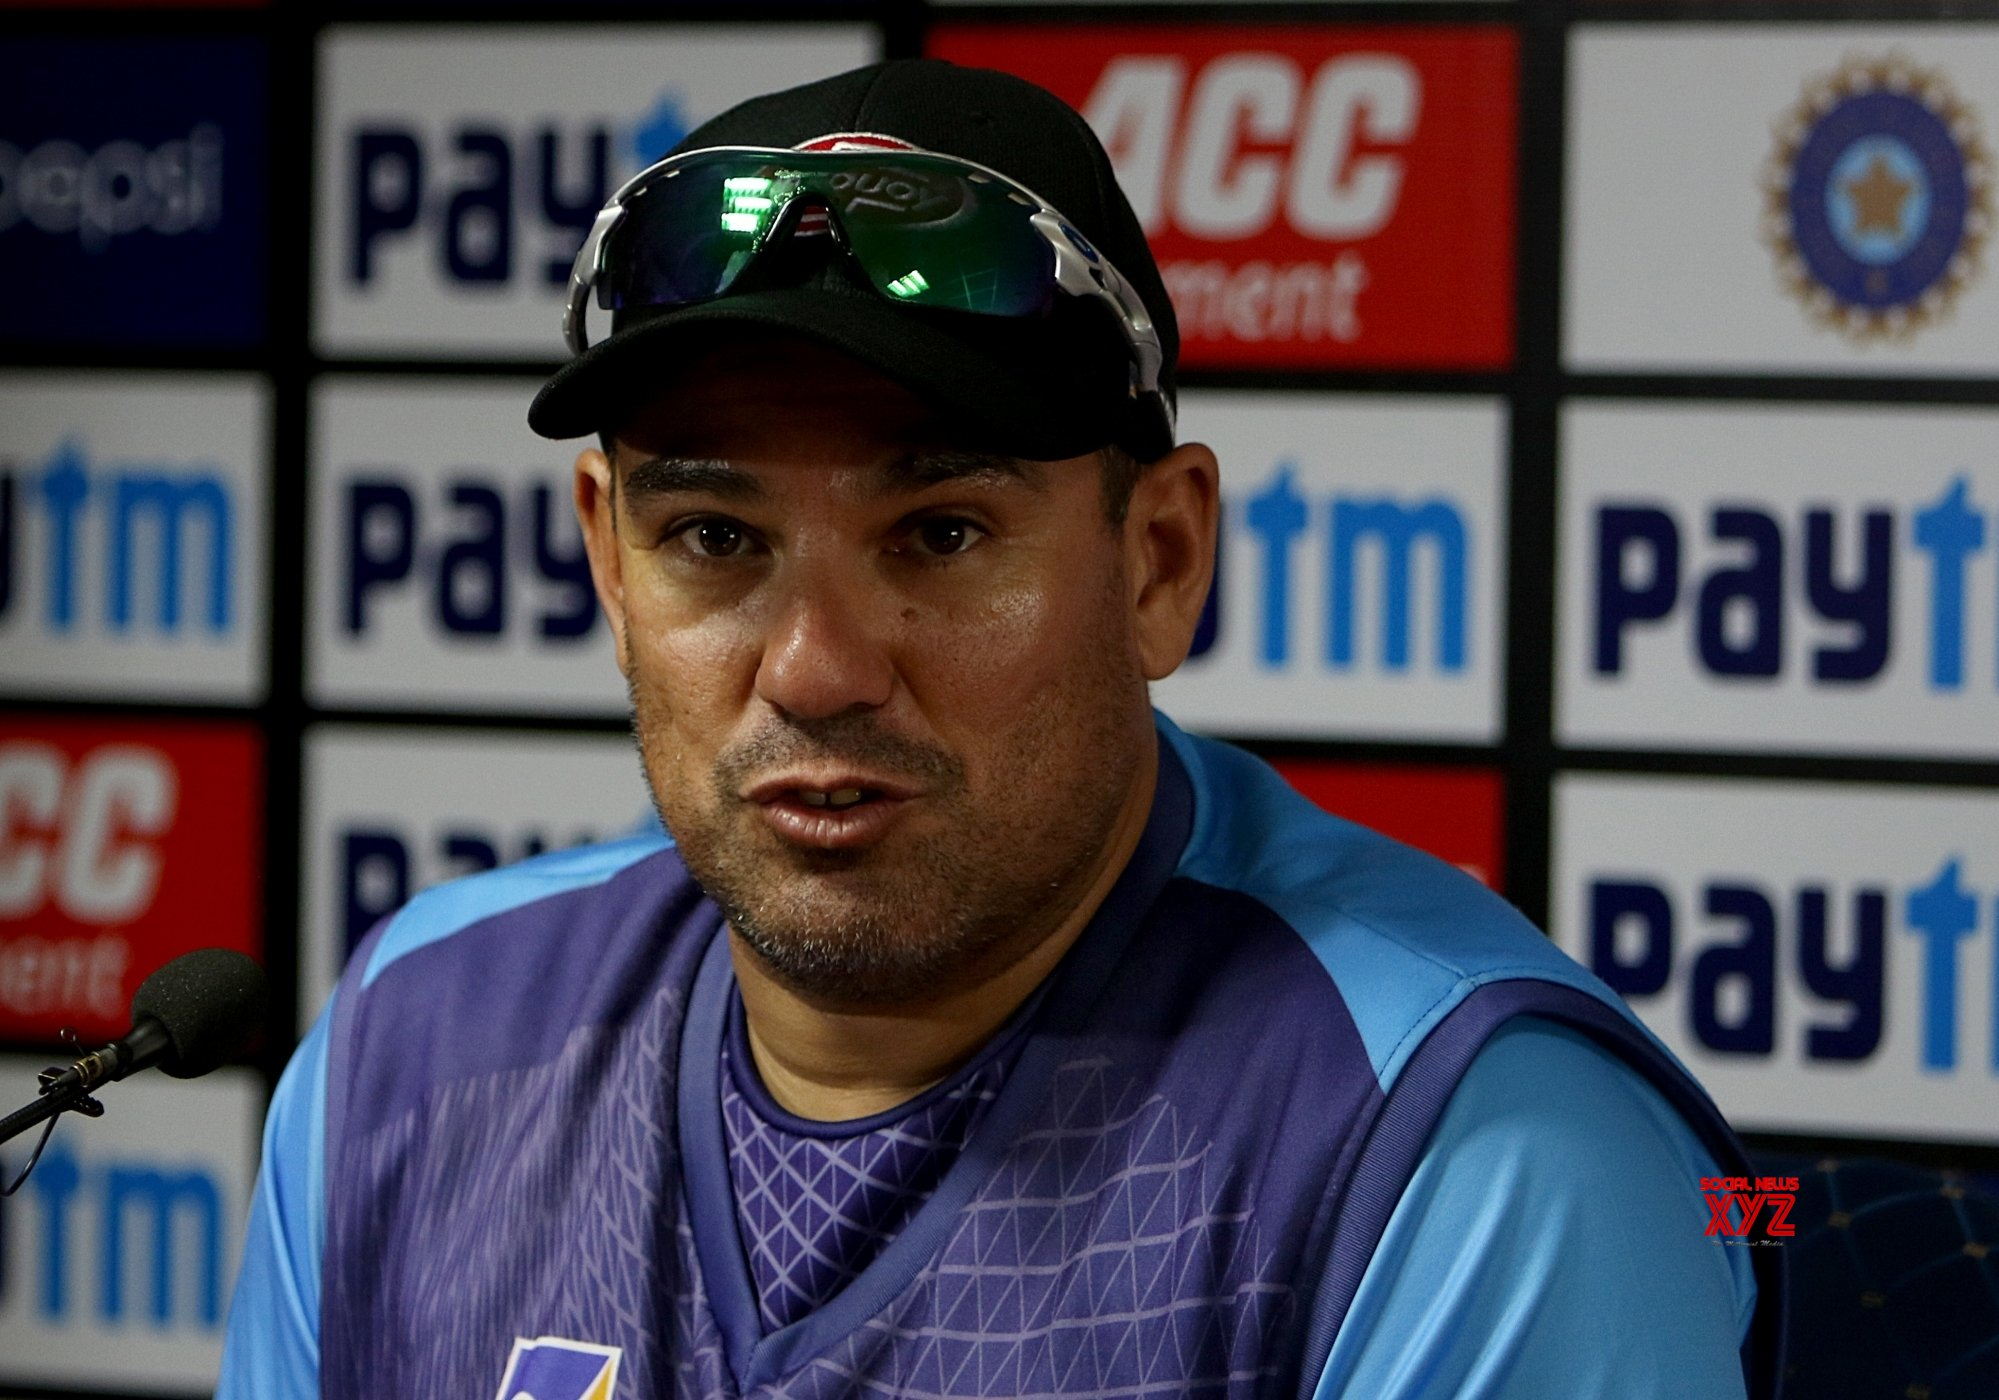 Nagpur: Russell Domingo's press conference #Gallery